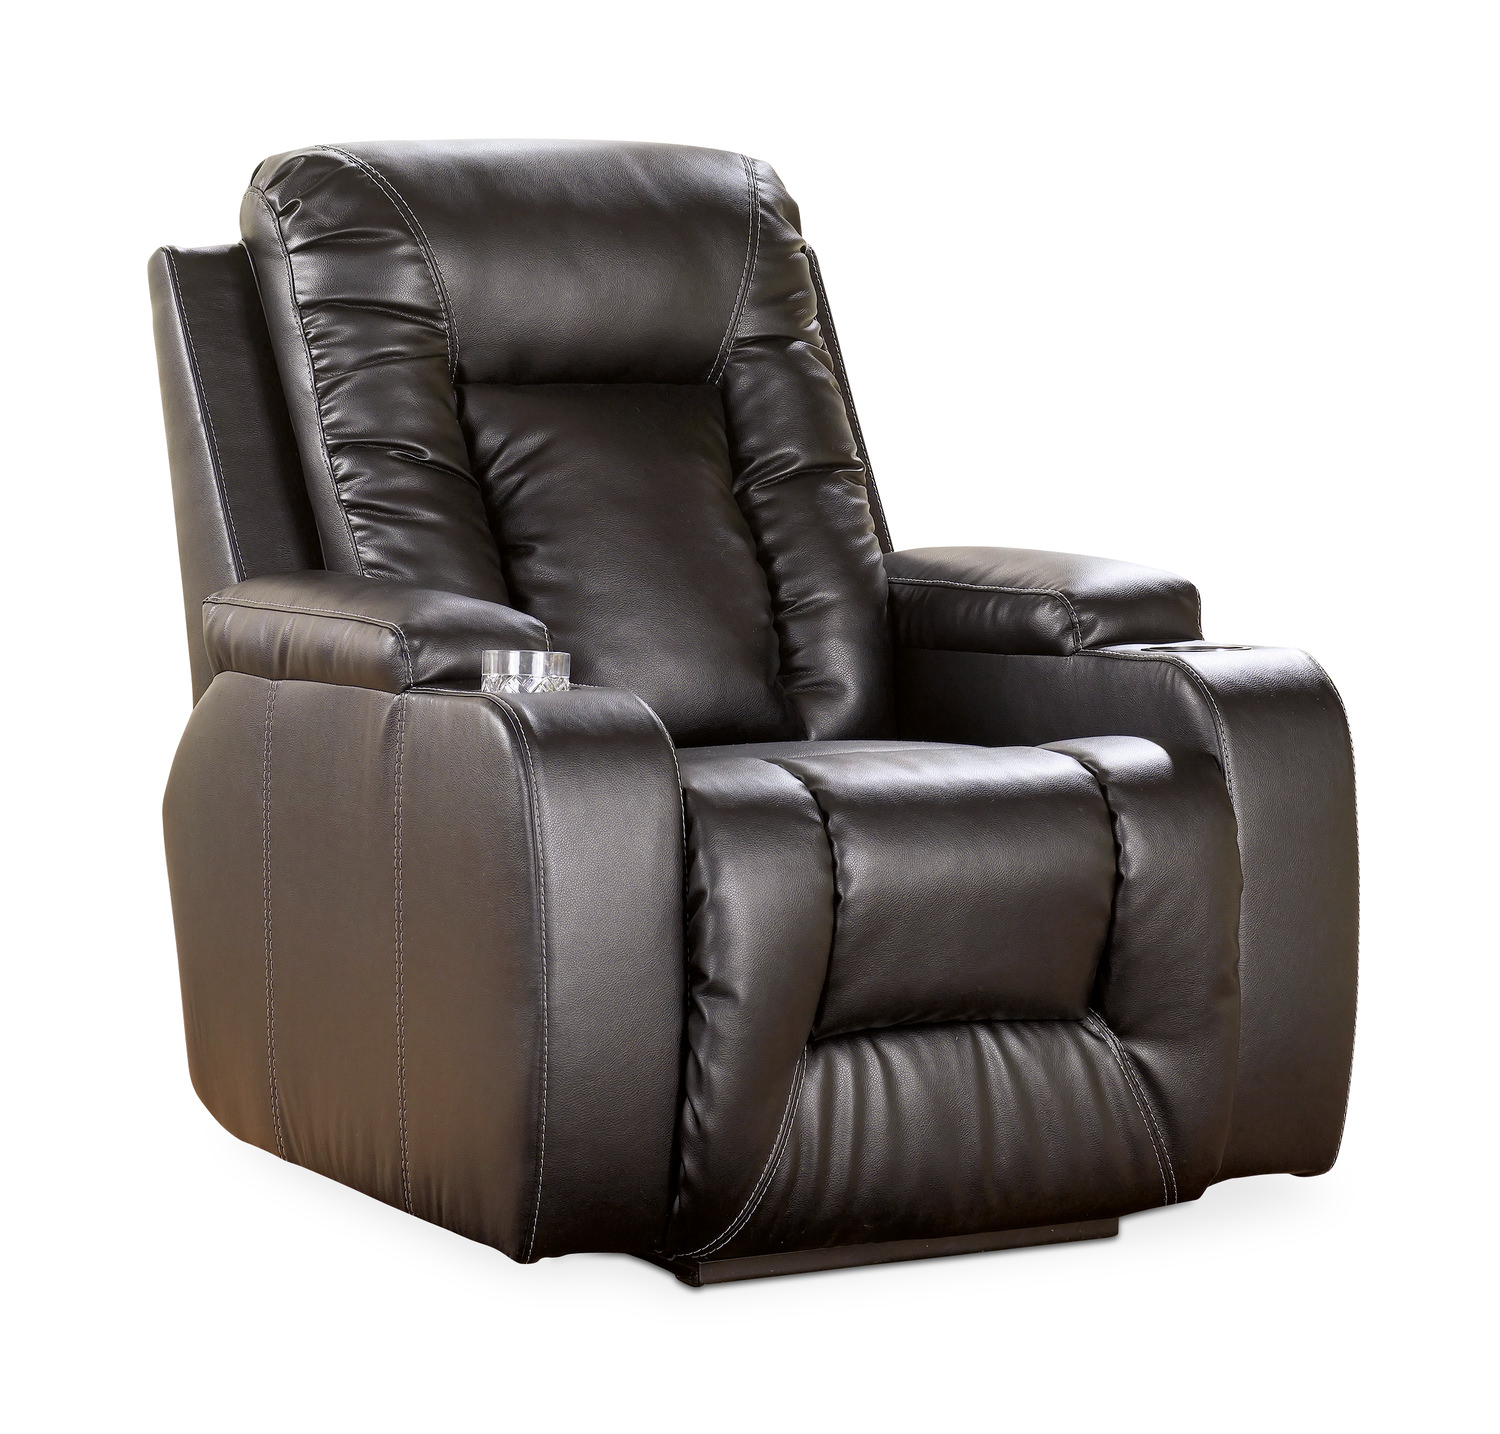 theater seats home recliner seating costco cinema recliners